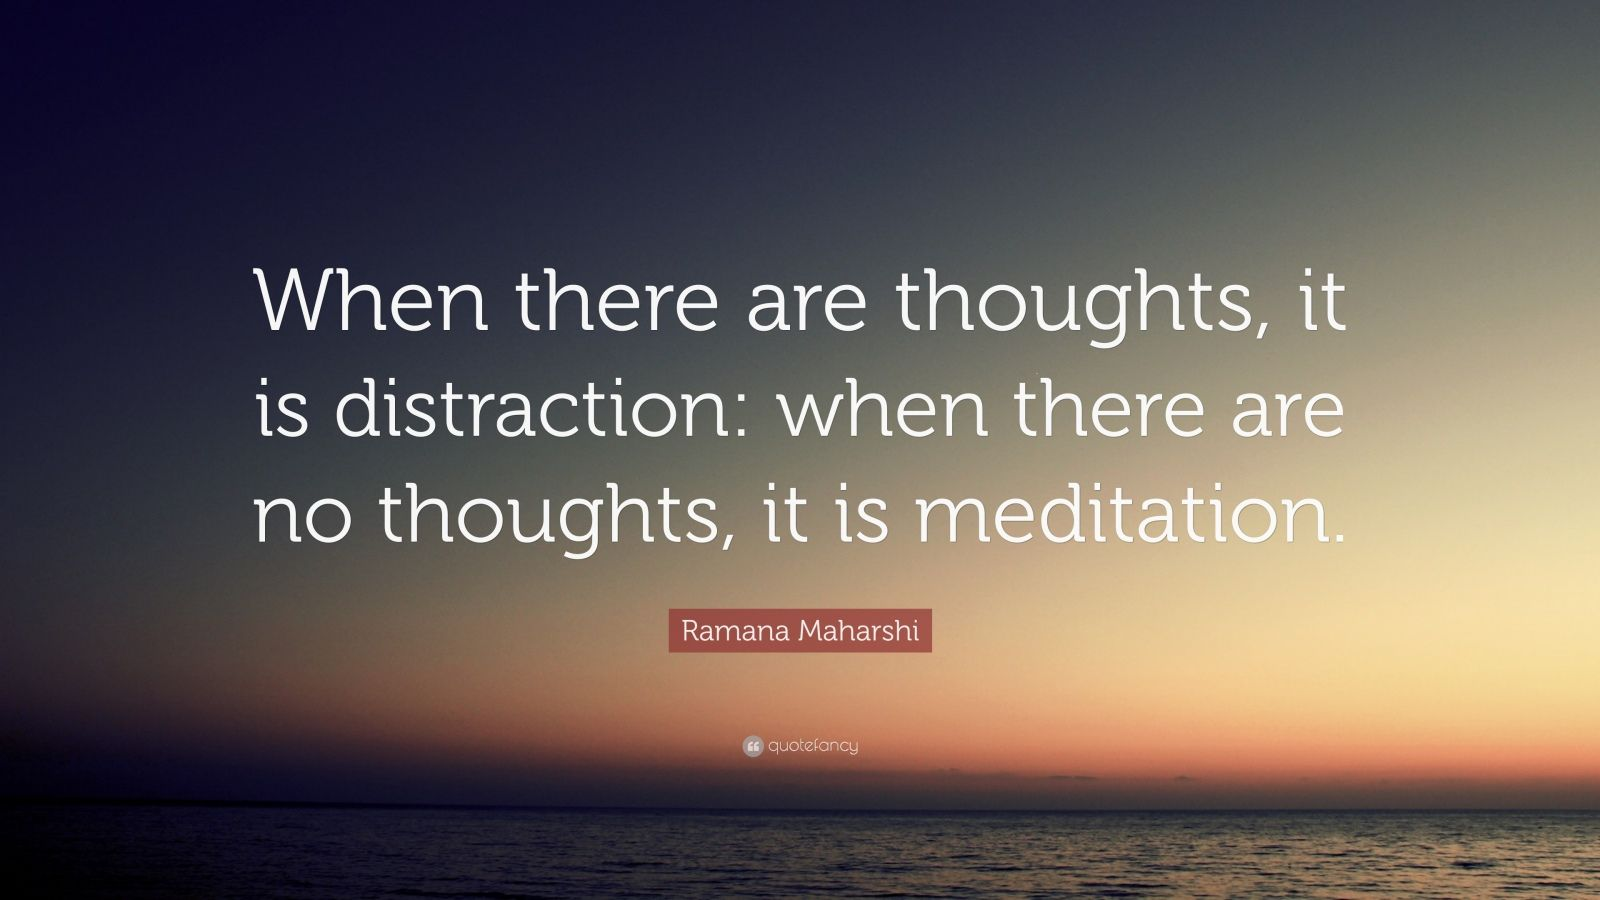 """Ramana Maharshi Quote: """"When there are thoughts, it is distraction: when there are no thoughts, it is meditation."""""""